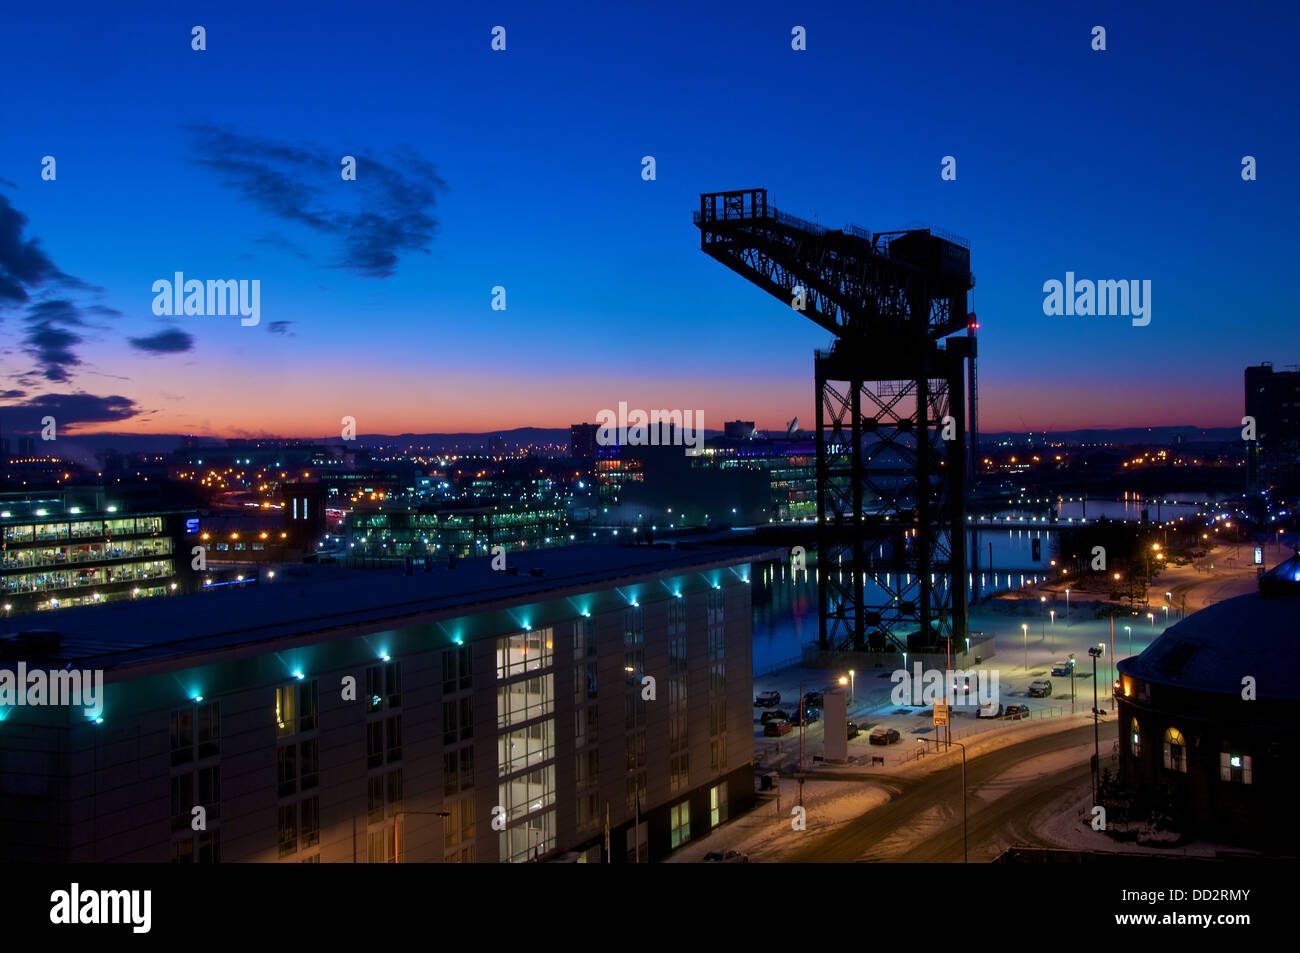 The Finnieston Crane sitting on the banks of the river Clyde is a landmark in Glasgow, Scotland - Stock Image